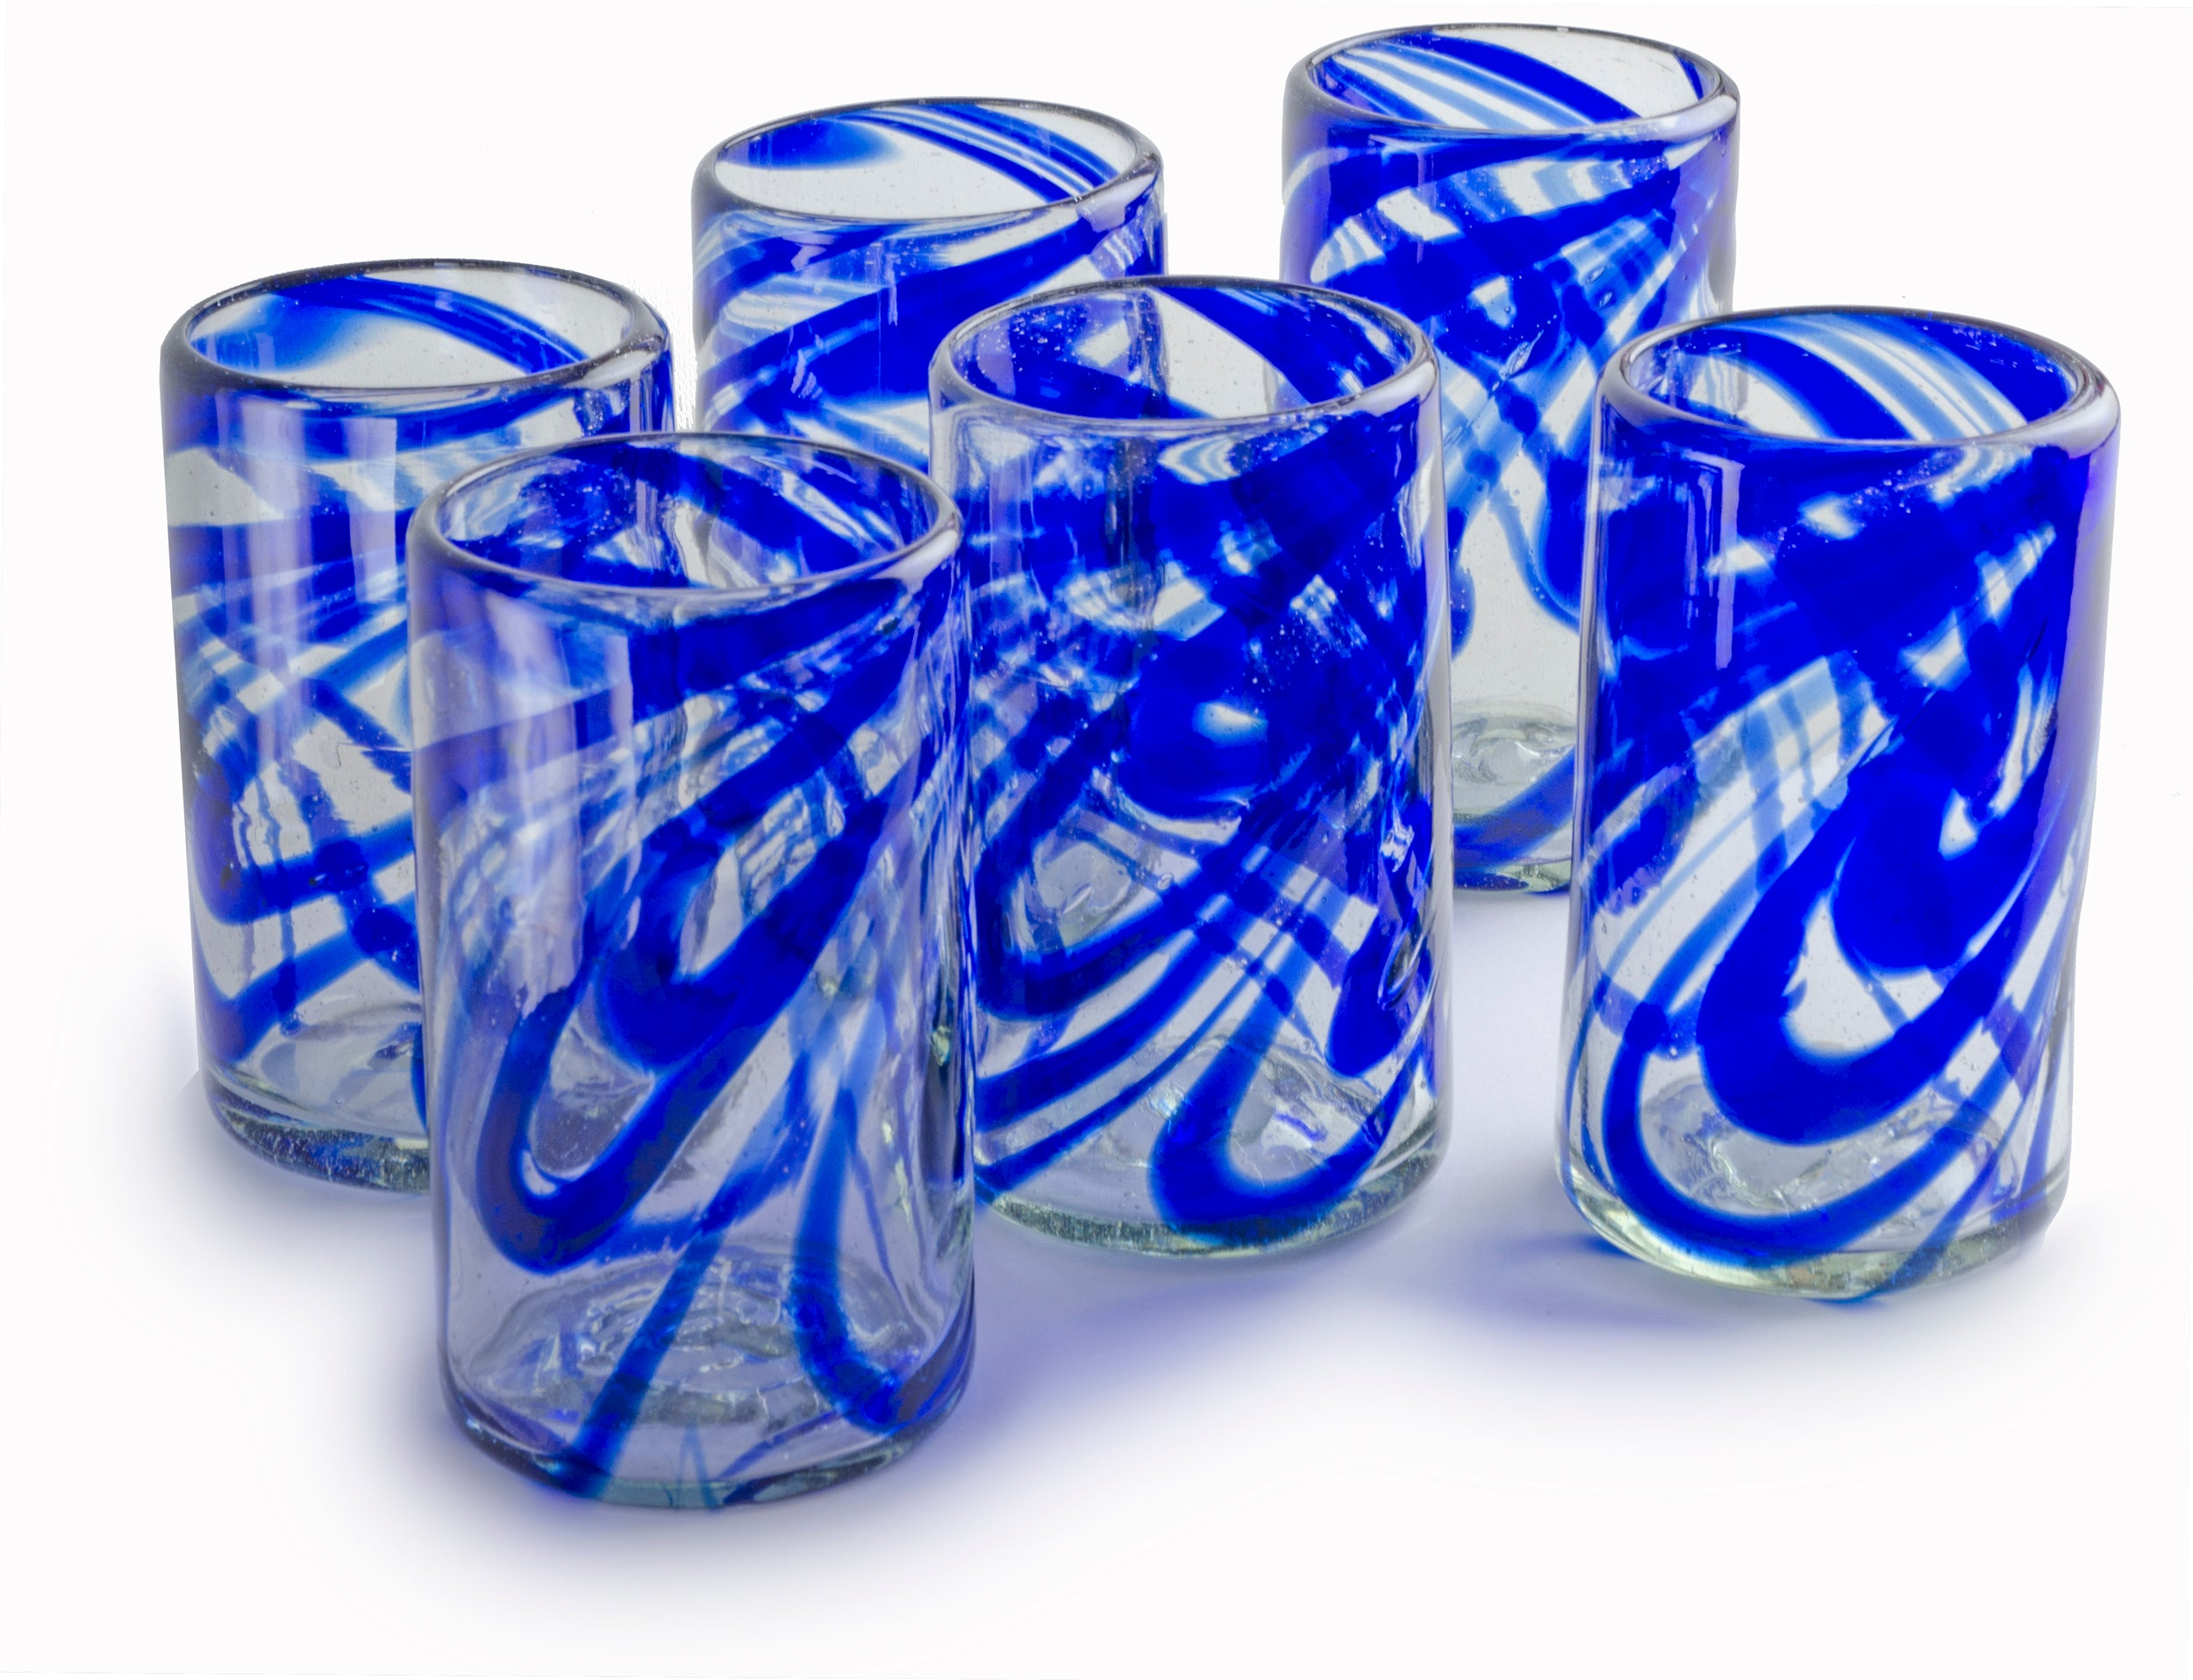 Orion Blue Swirl 16 oz Tumbler - Set of 6 - Orion's Table Mexican Glassware